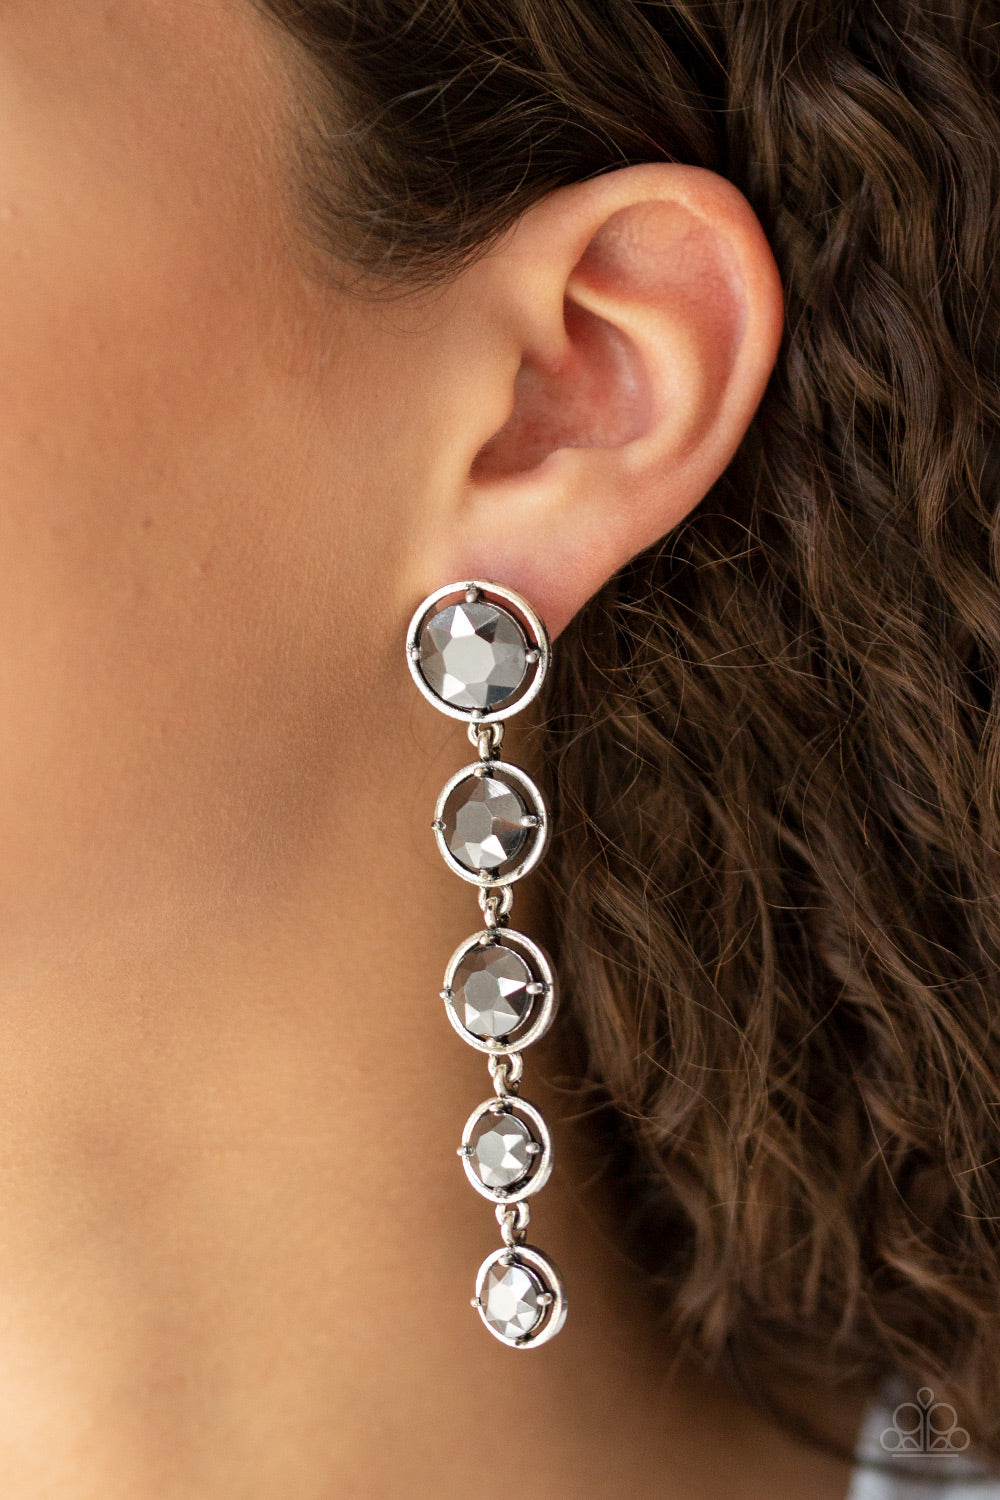 Paparazzi Jewelry & Accessories - Drippin In Starlight - Silver Hematite Earrings. Bling By Titia